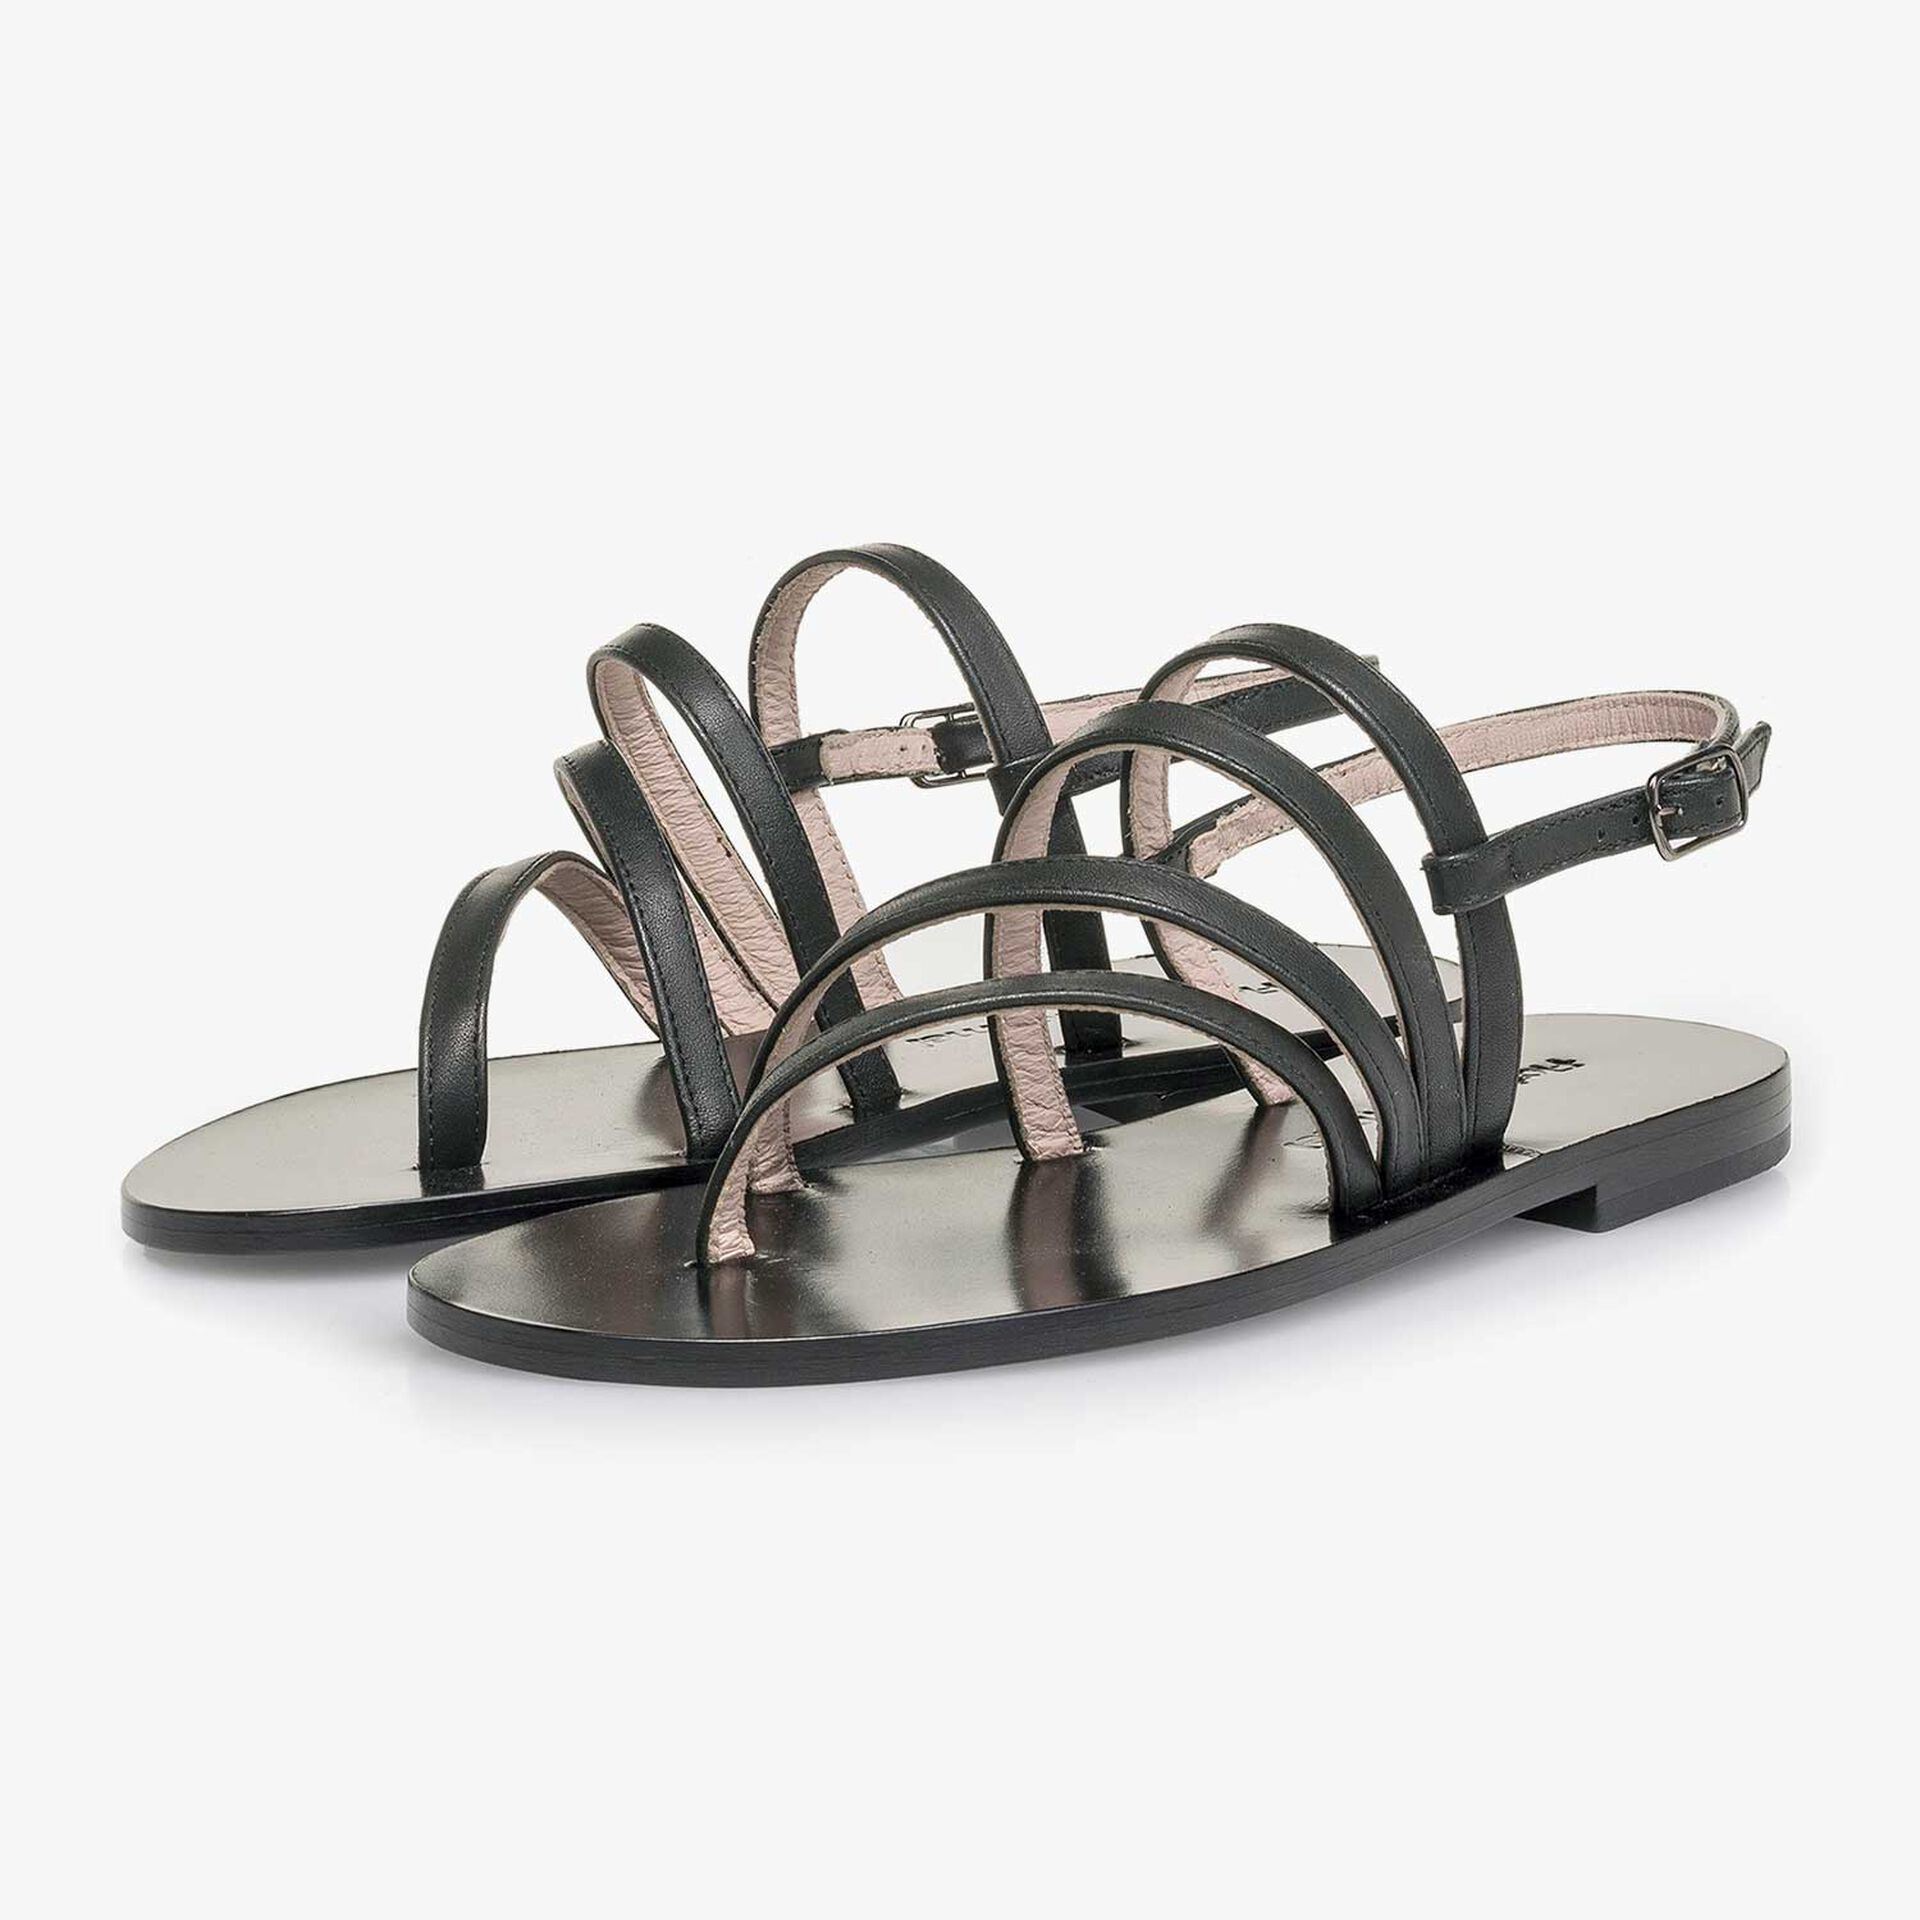 Black calf leather sandal